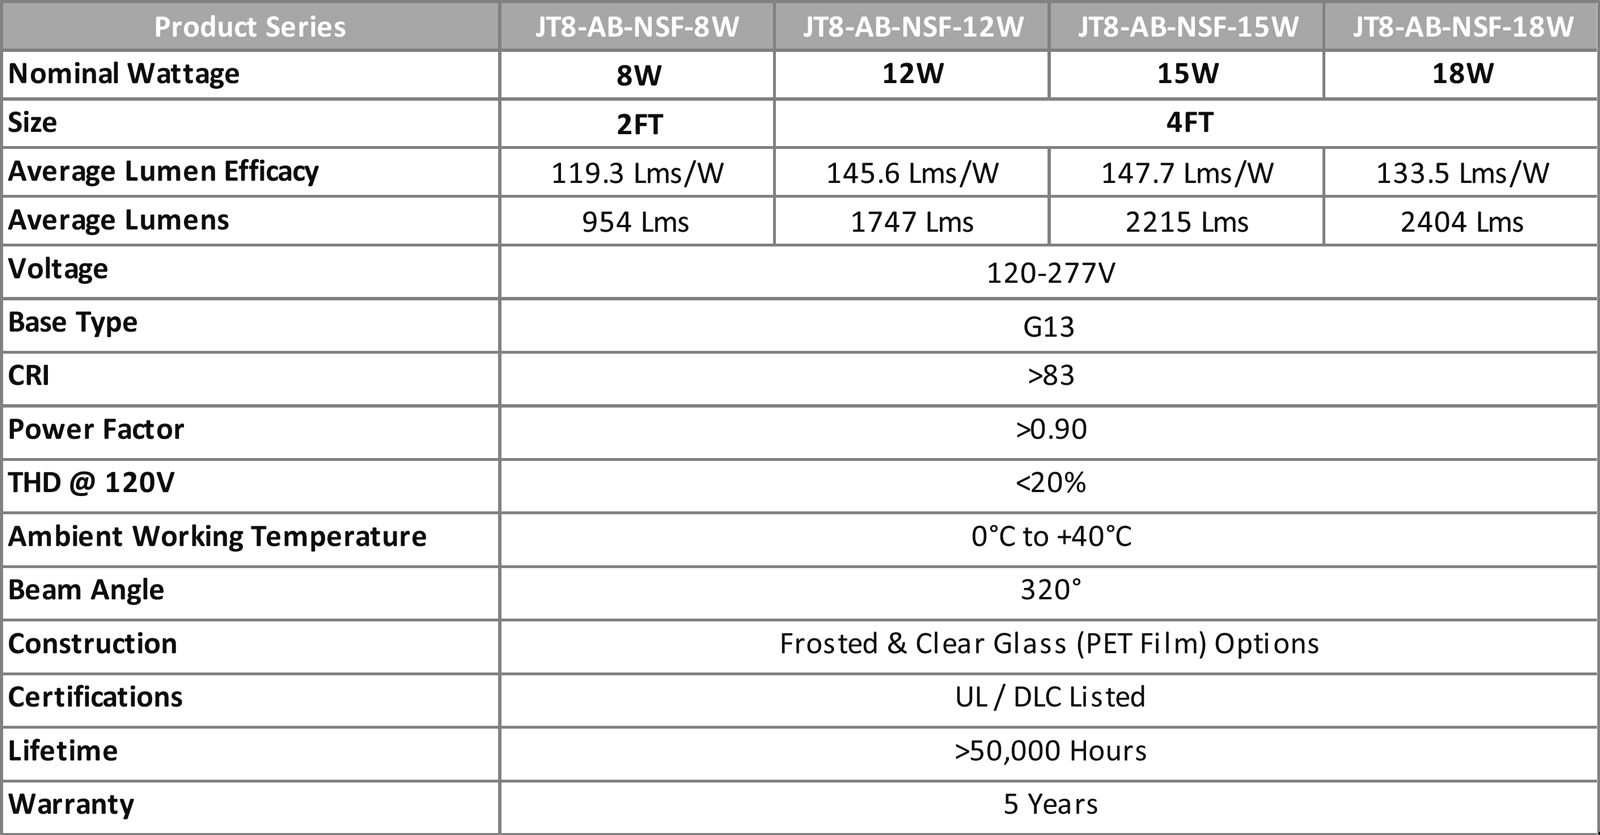 Lamps JT8 Glass T8 Lamps A&B Type